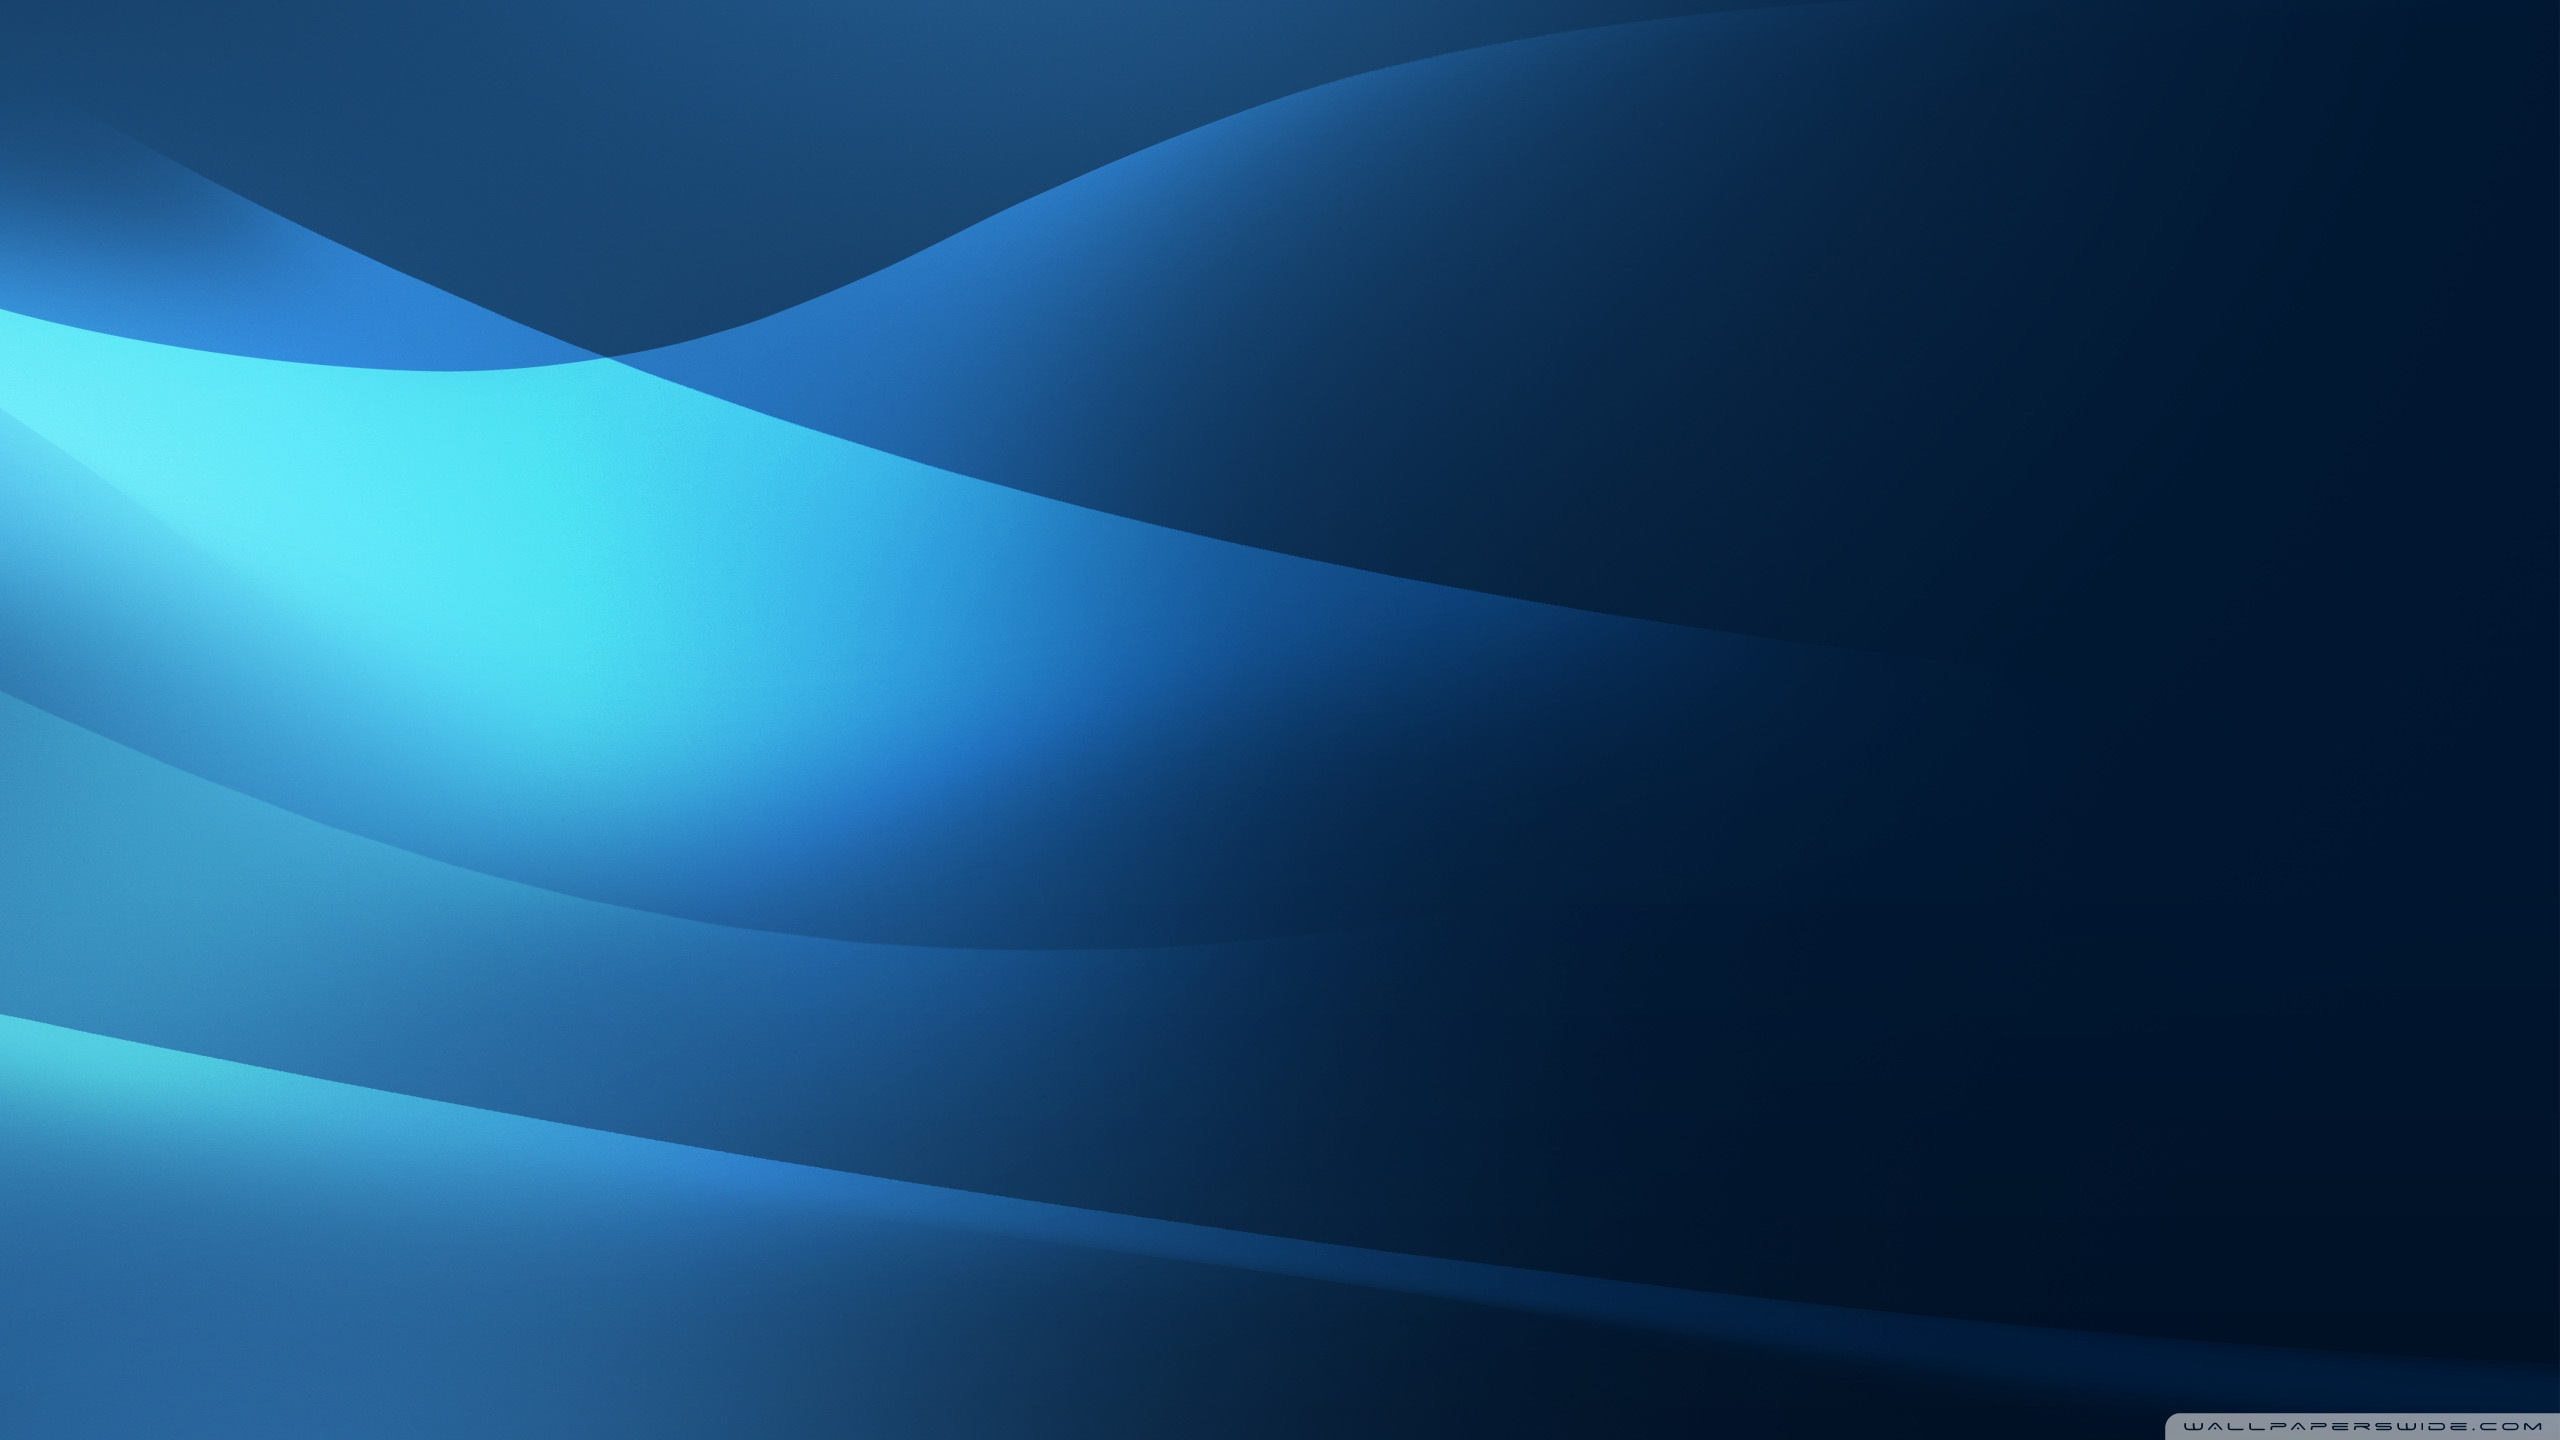 Blue Abstract Background wallpaper 2560x1440 82247 2560x1440